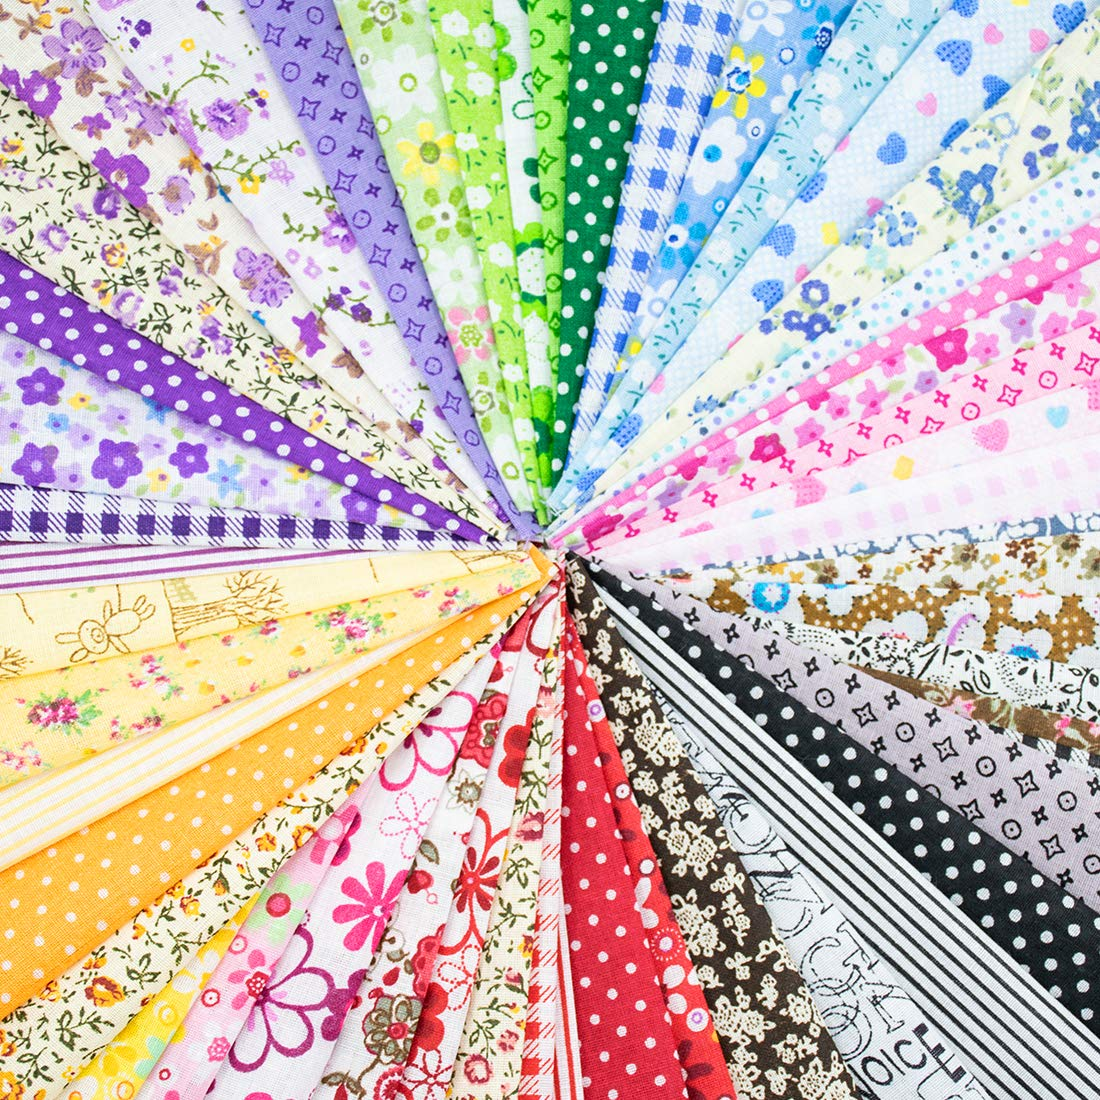 Foraineam 60 PCS Different Designs9.8'' x 9.8'' (25cm x 25cm) Cotton Craft Fabric Bundle Printed Patchwork Squares for DIY Sewing Quilting Scrapbooking by Foraineam (Image #3)